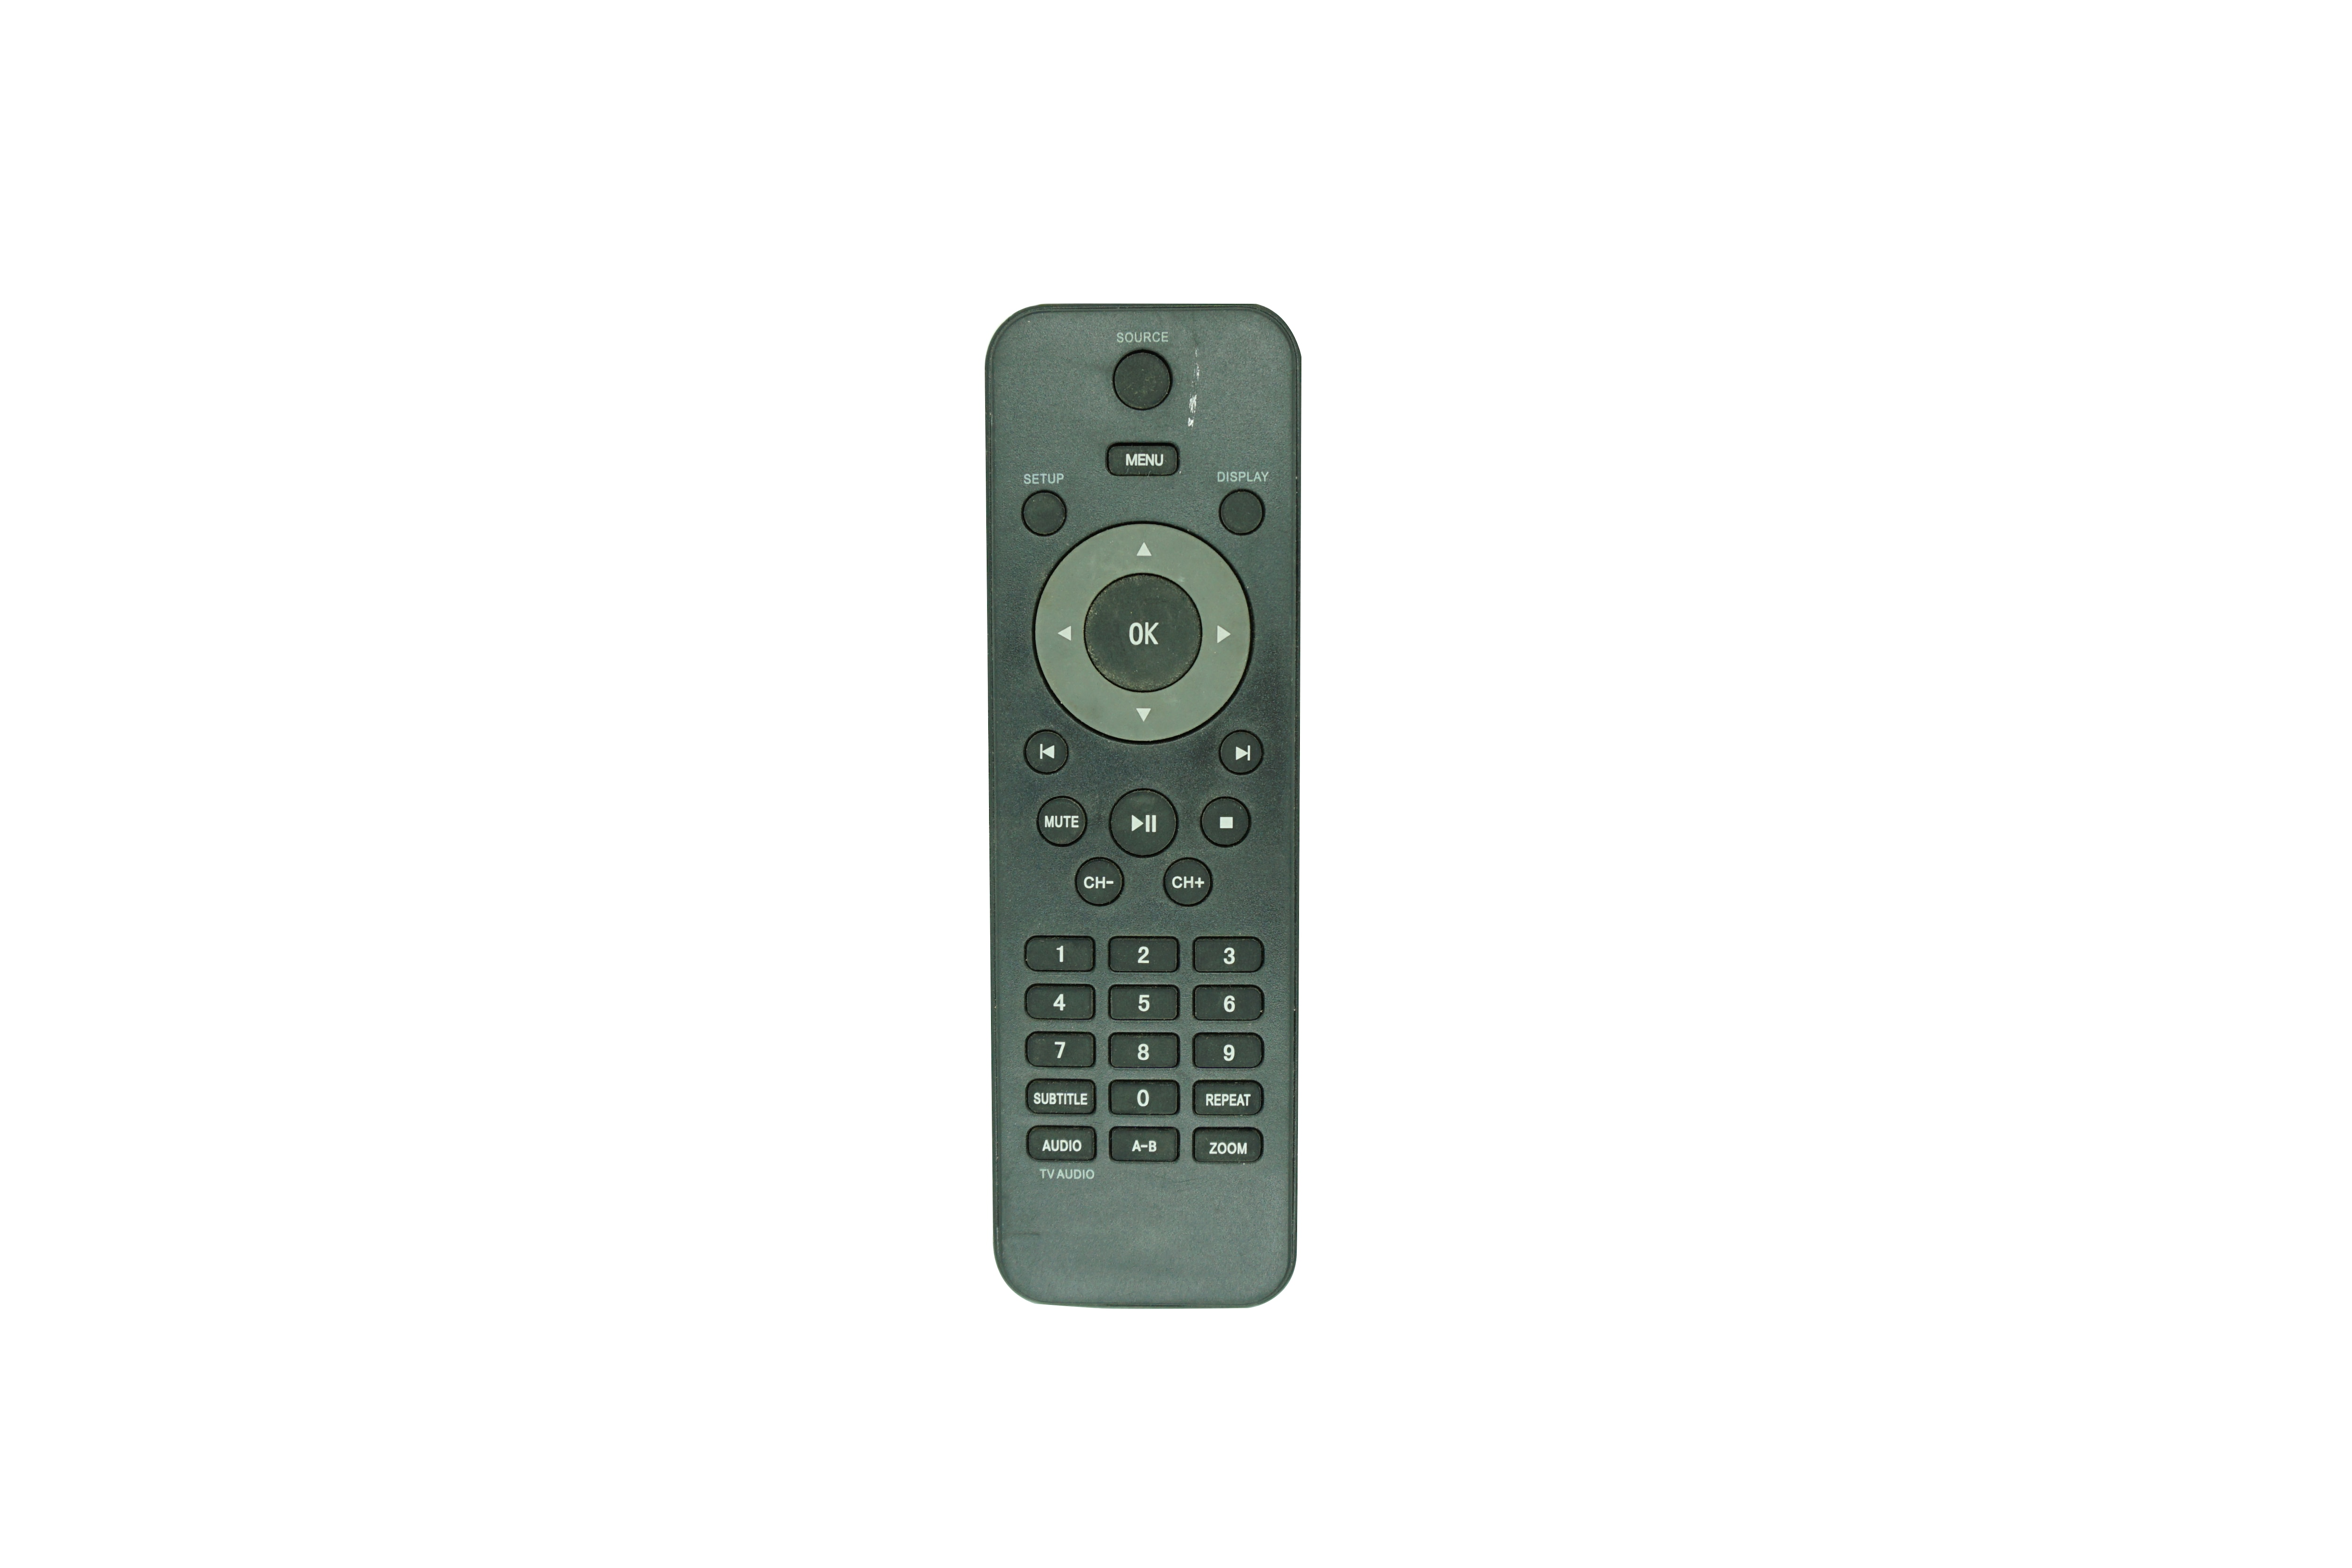 Remote Control For Philips PD7007 PD7007/98 PD7007/51 PD7007/55 portable dvd player